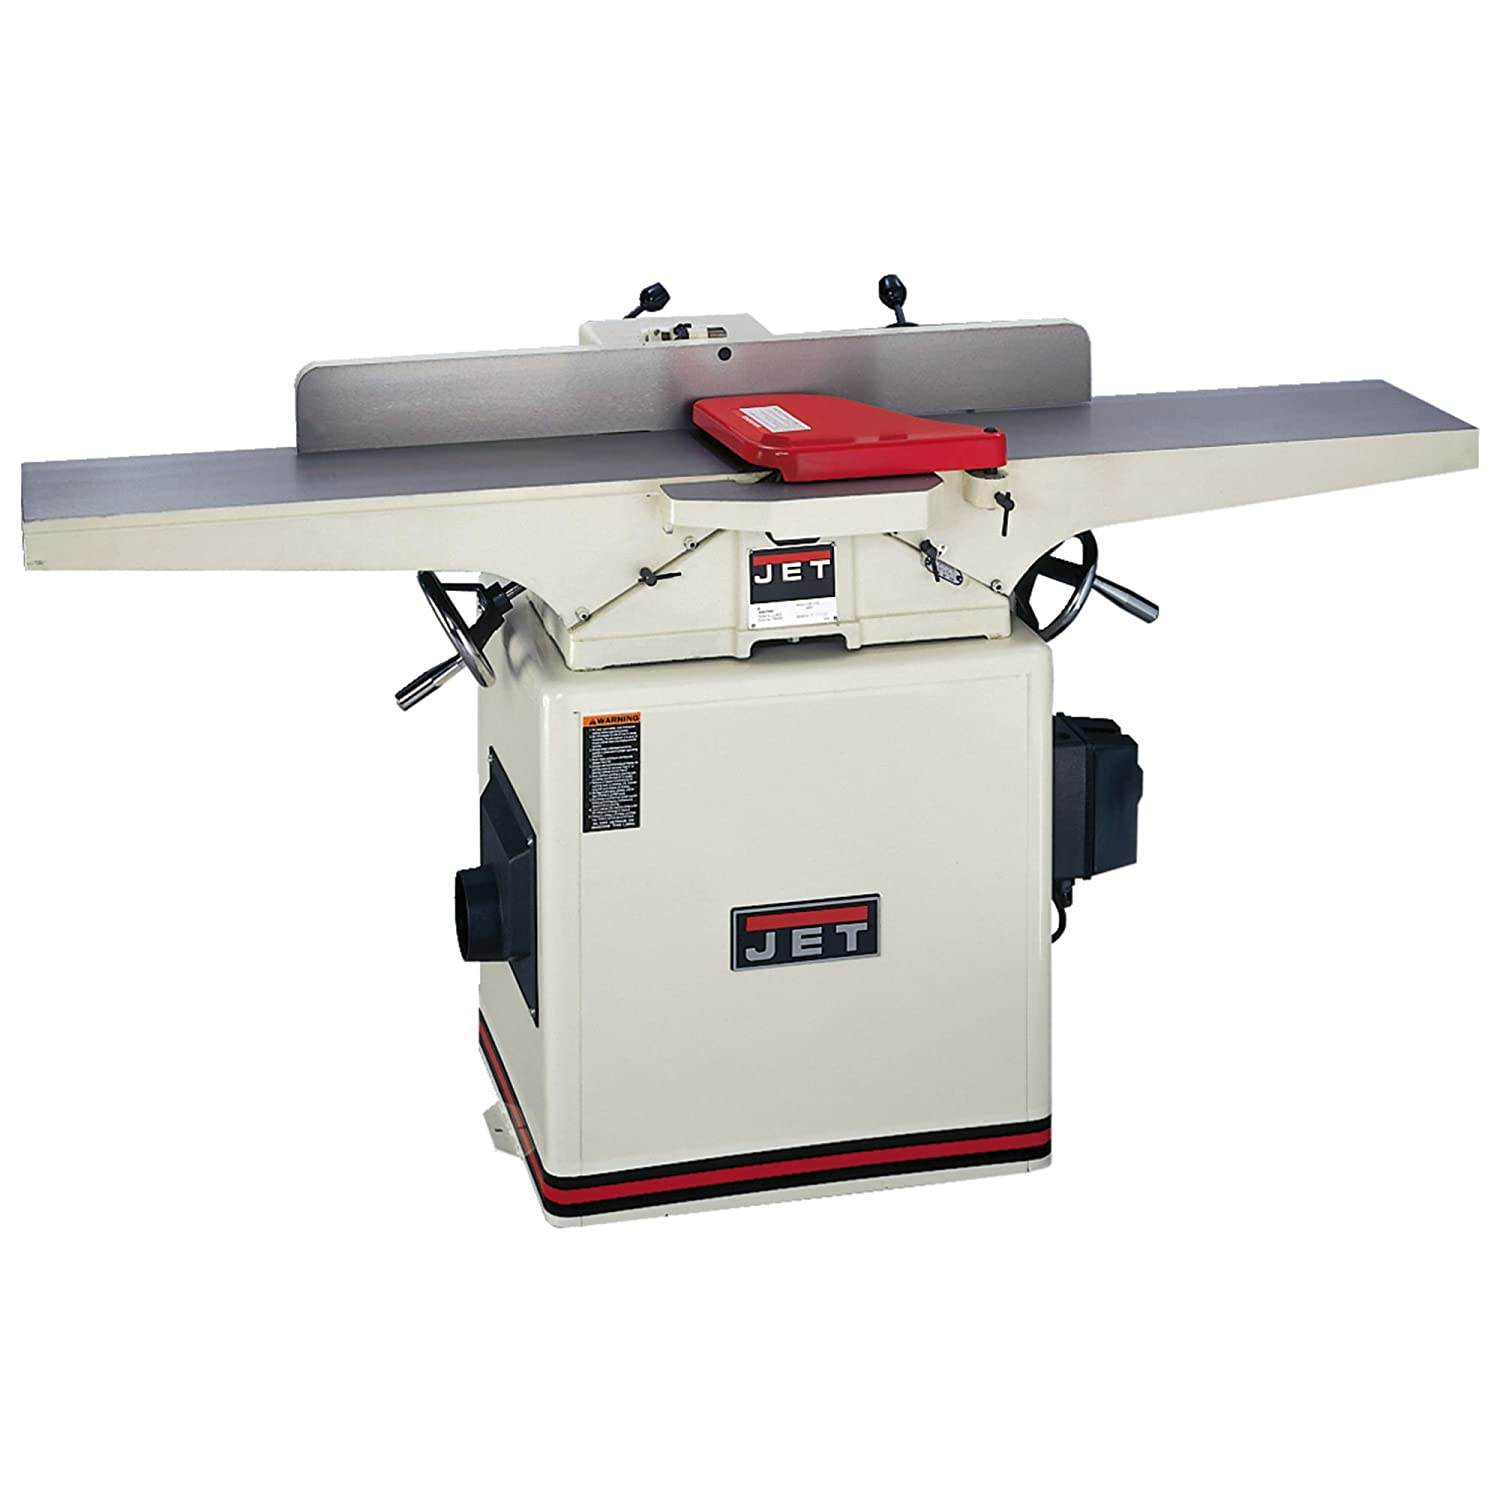 JET 708458K JJ-8CS, 8-in Closed Stand Jointer - Power Jointers - Amazon.com